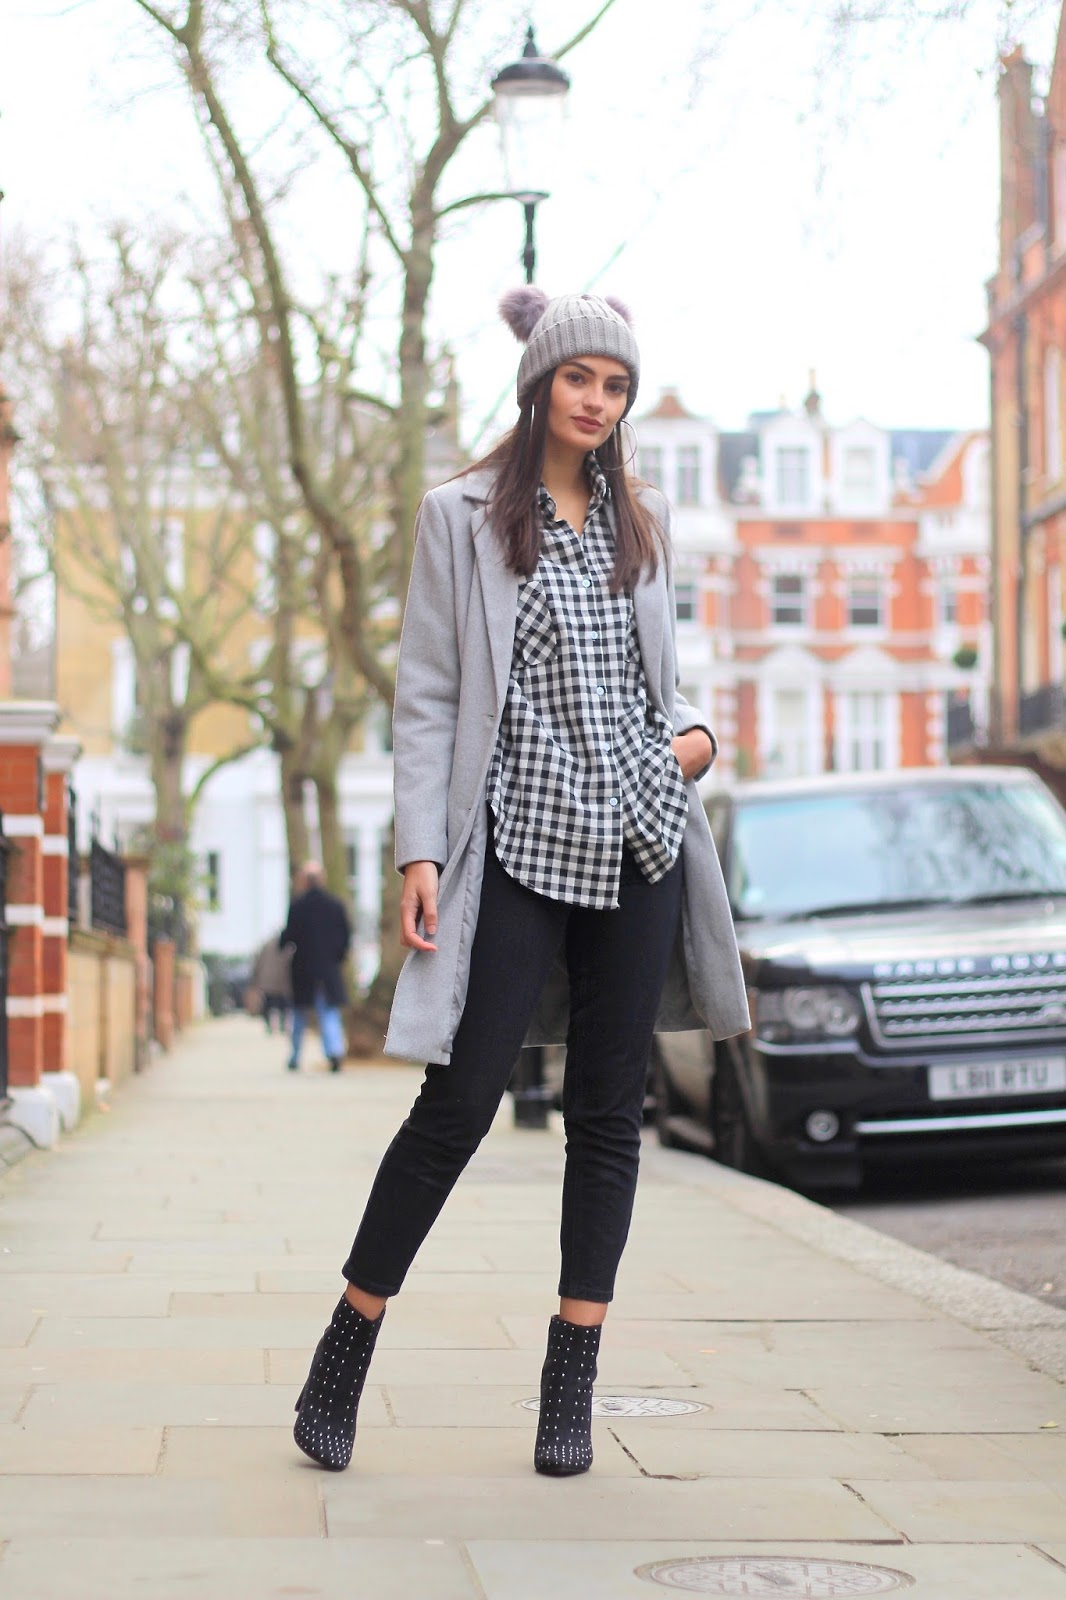 peexo street style blogger london gingham